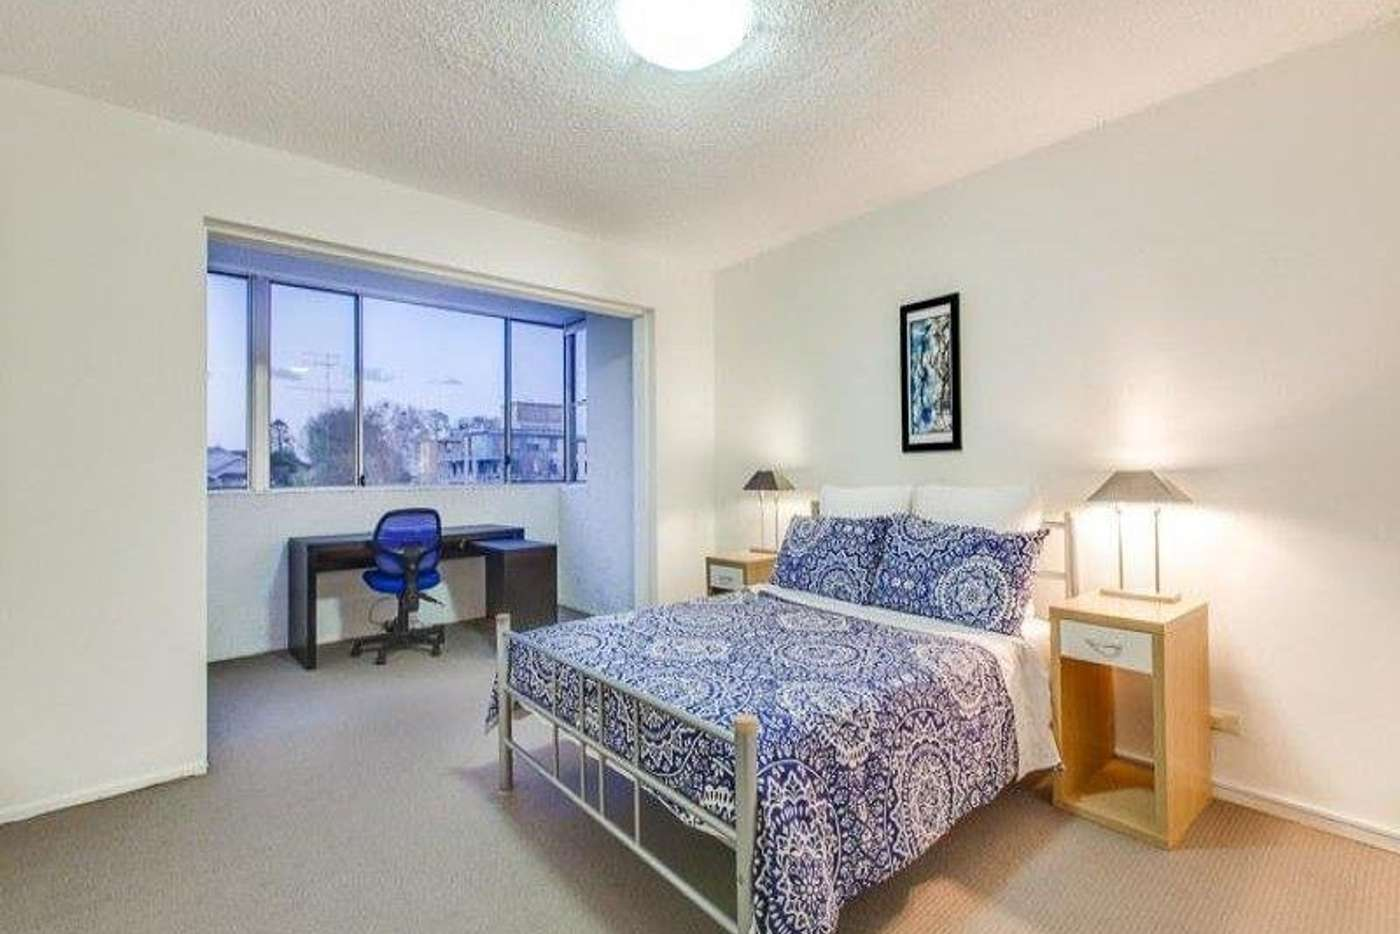 Fifth view of Homely apartment listing, 7/1 Rossiter Parade, Hamilton QLD 4007